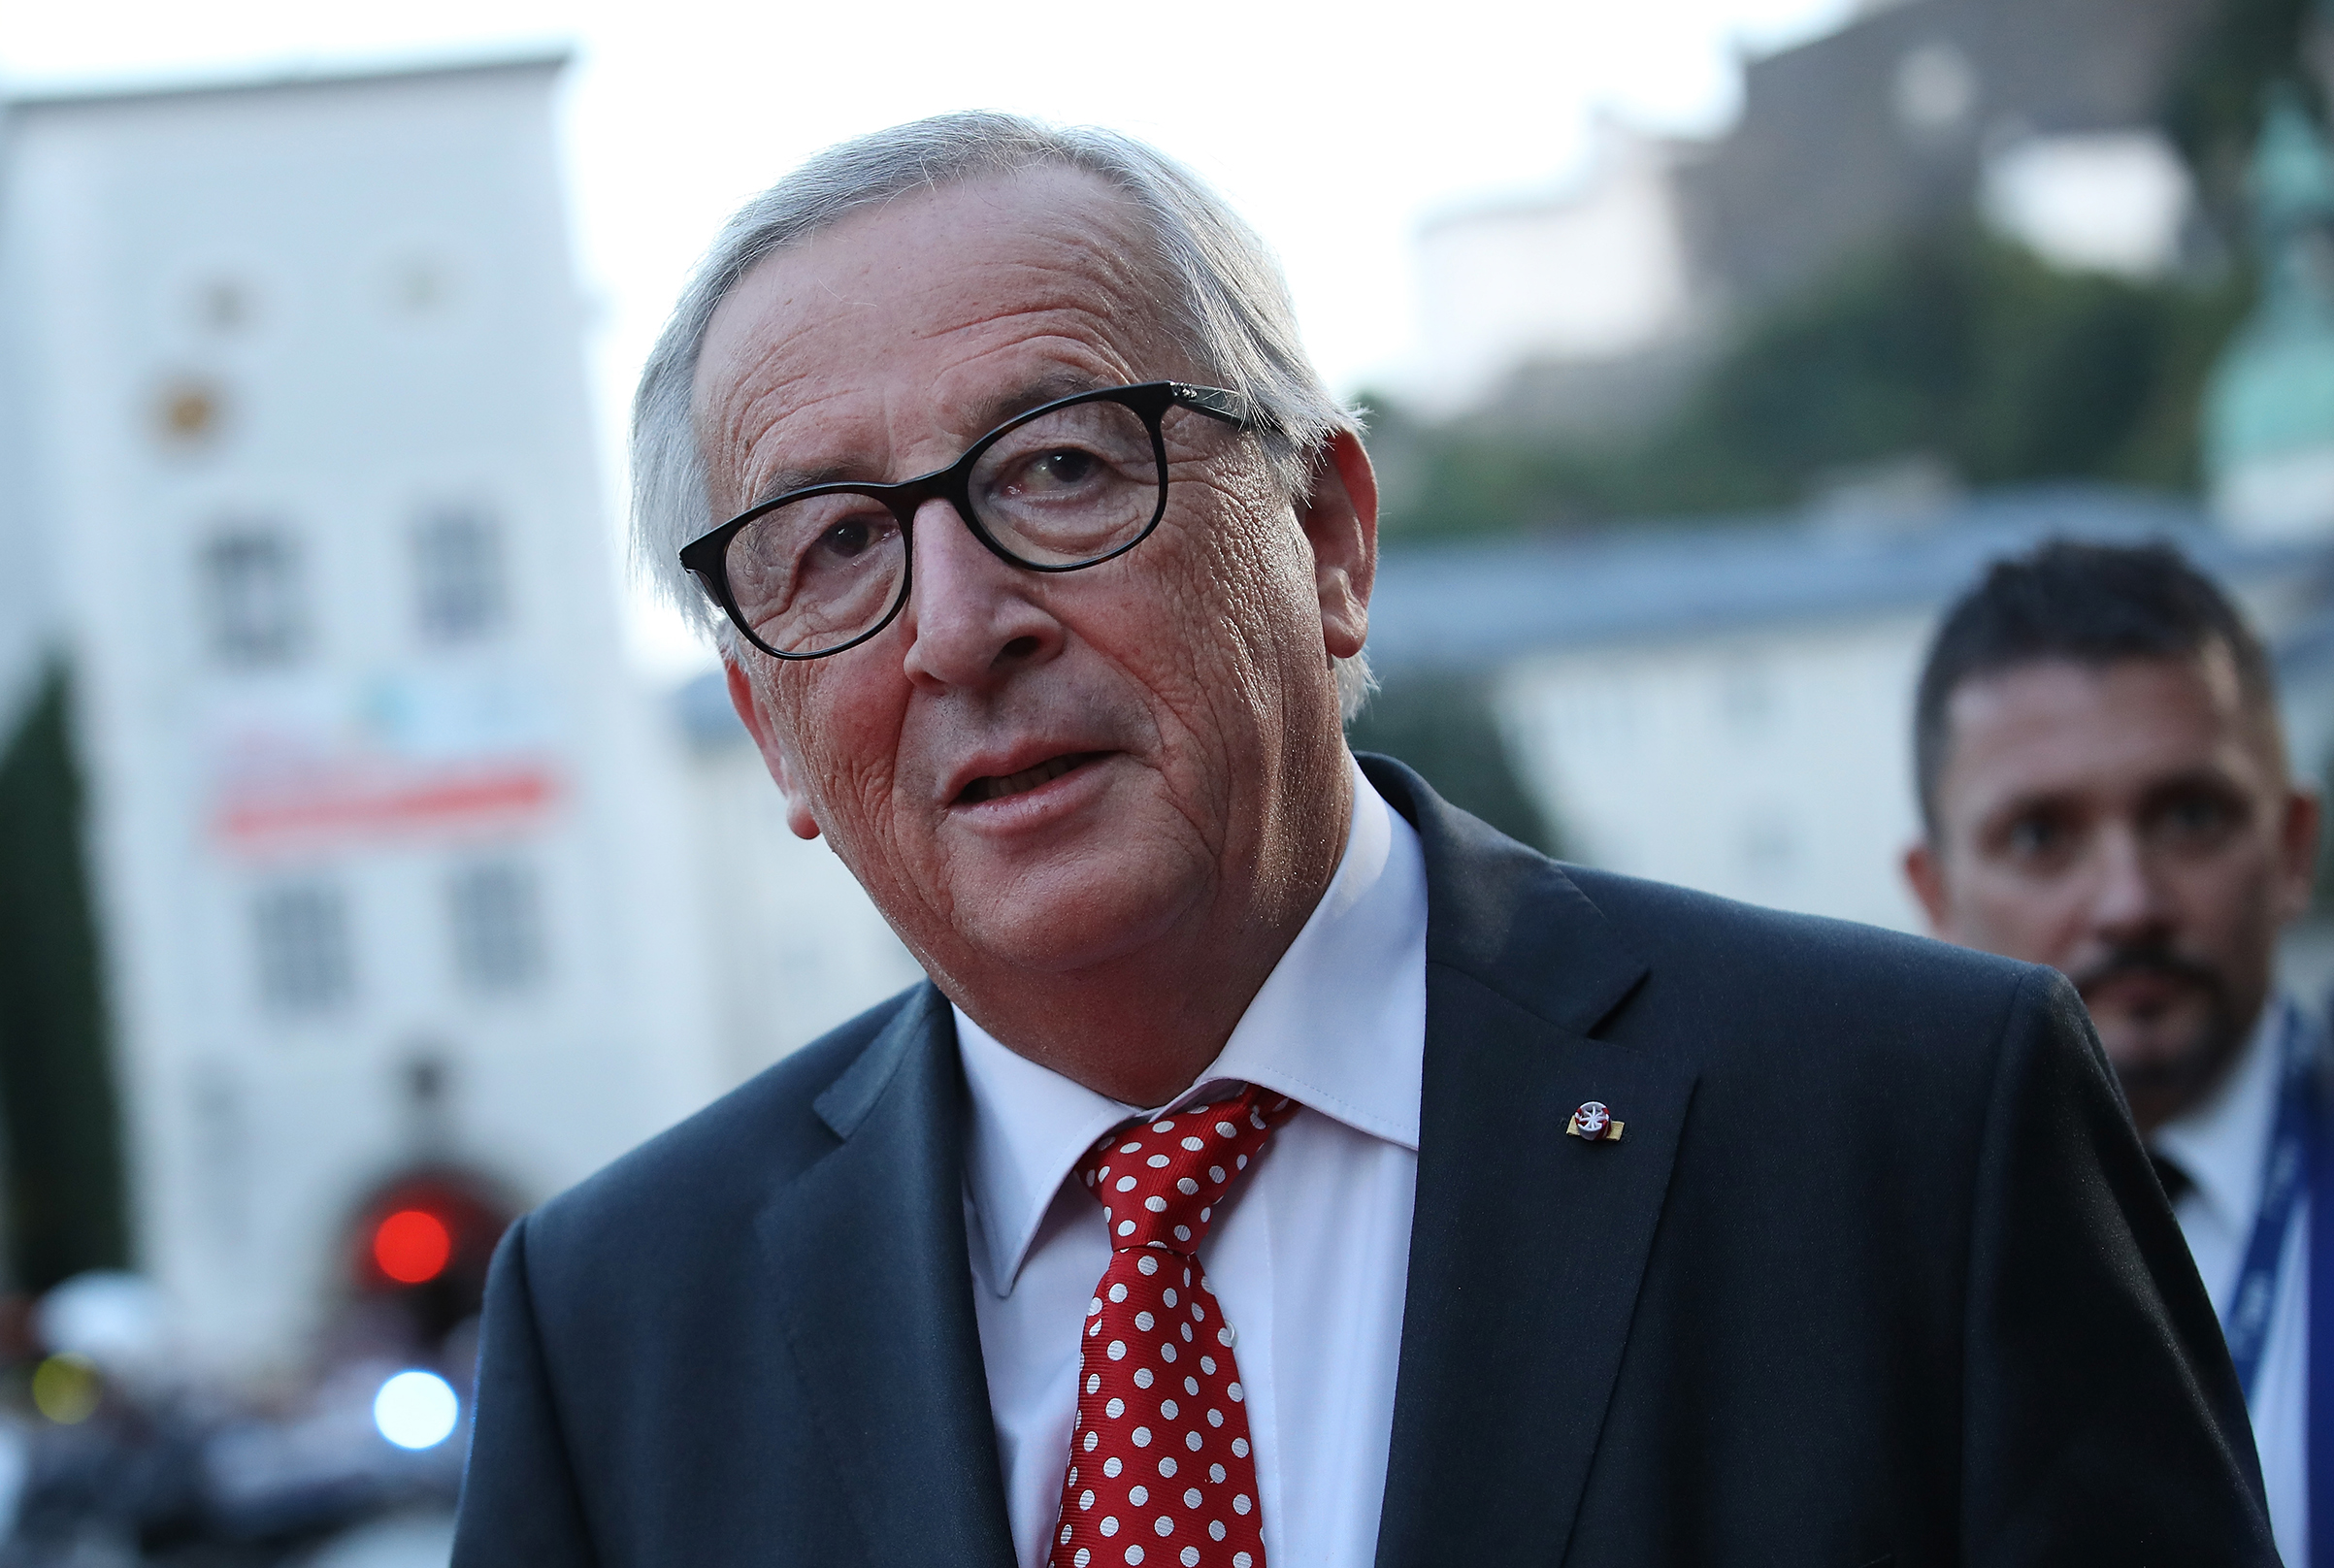 Jean-Claude Juncker, President of the European Commission, arrives at an informal summit of leaders of the European Union on September 19, 2018 in Salzburg, Austria. High on the agenda of the two-day summit is migration policy.